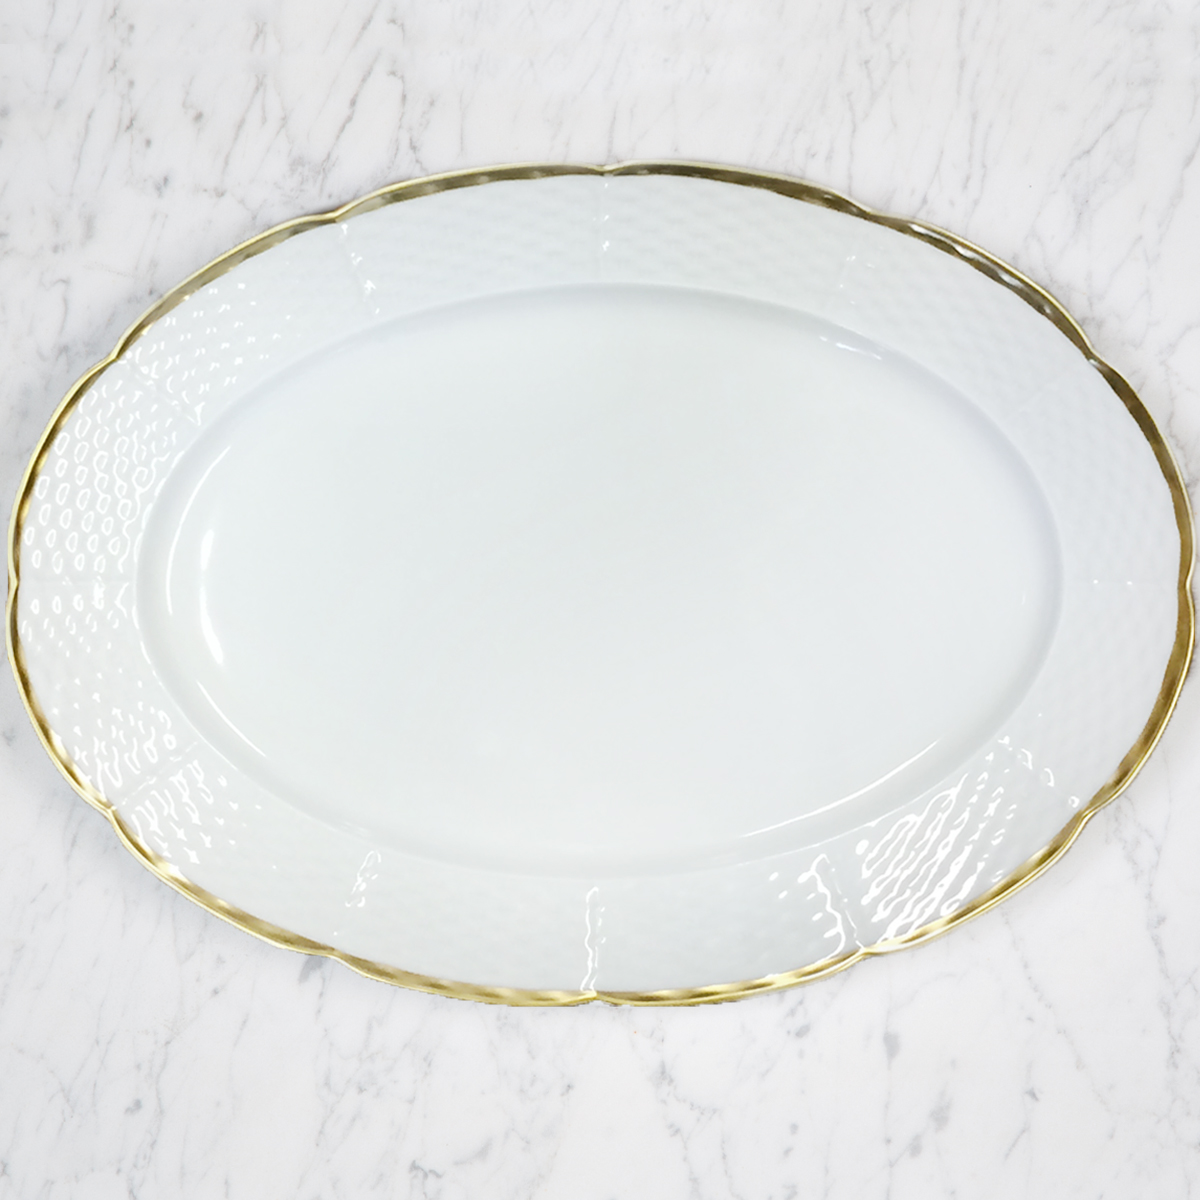 Clote-Wood WEAVE SIMPLY WHITE 24K GOLD OVAL PLATTER